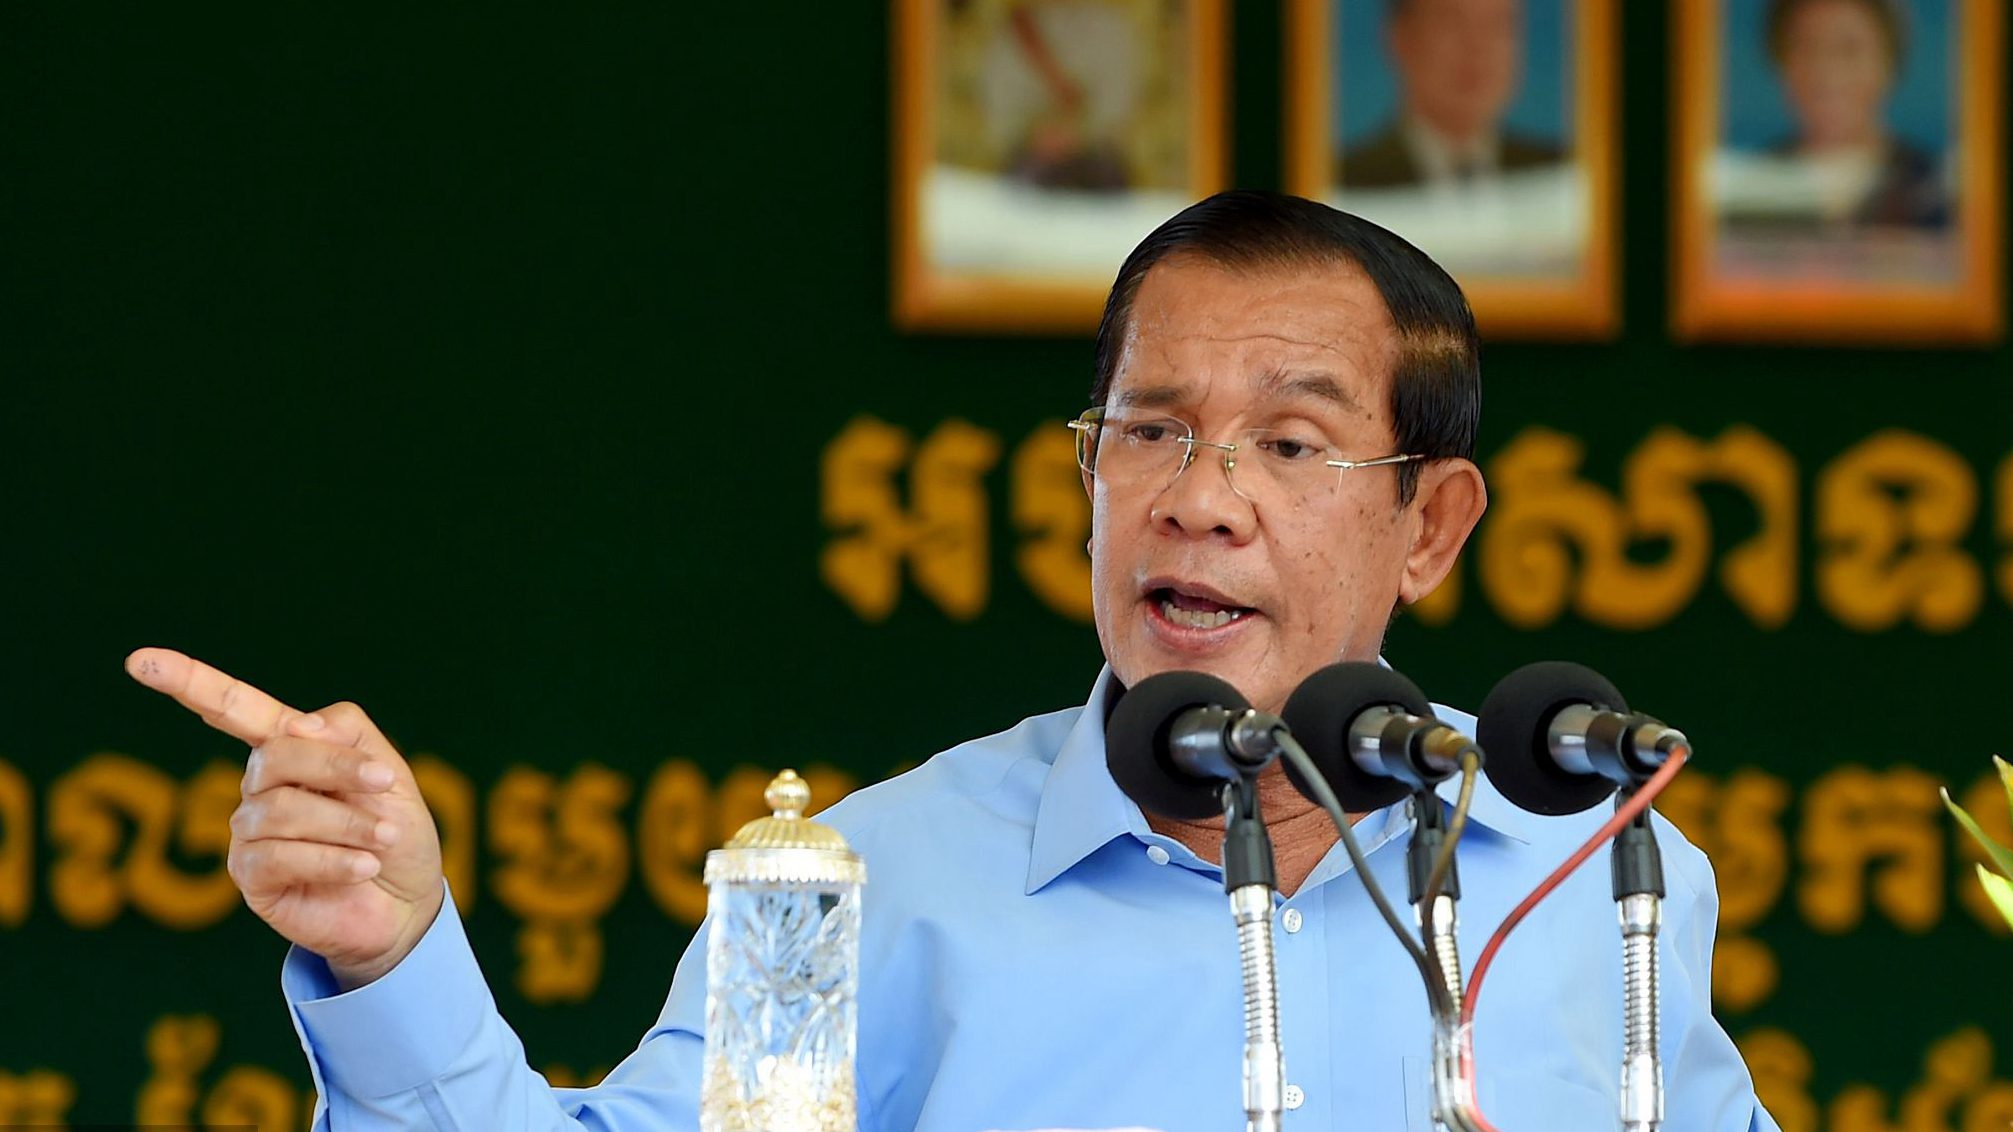 Cambodia's Hun Sen swears to die if vote numbers inflated